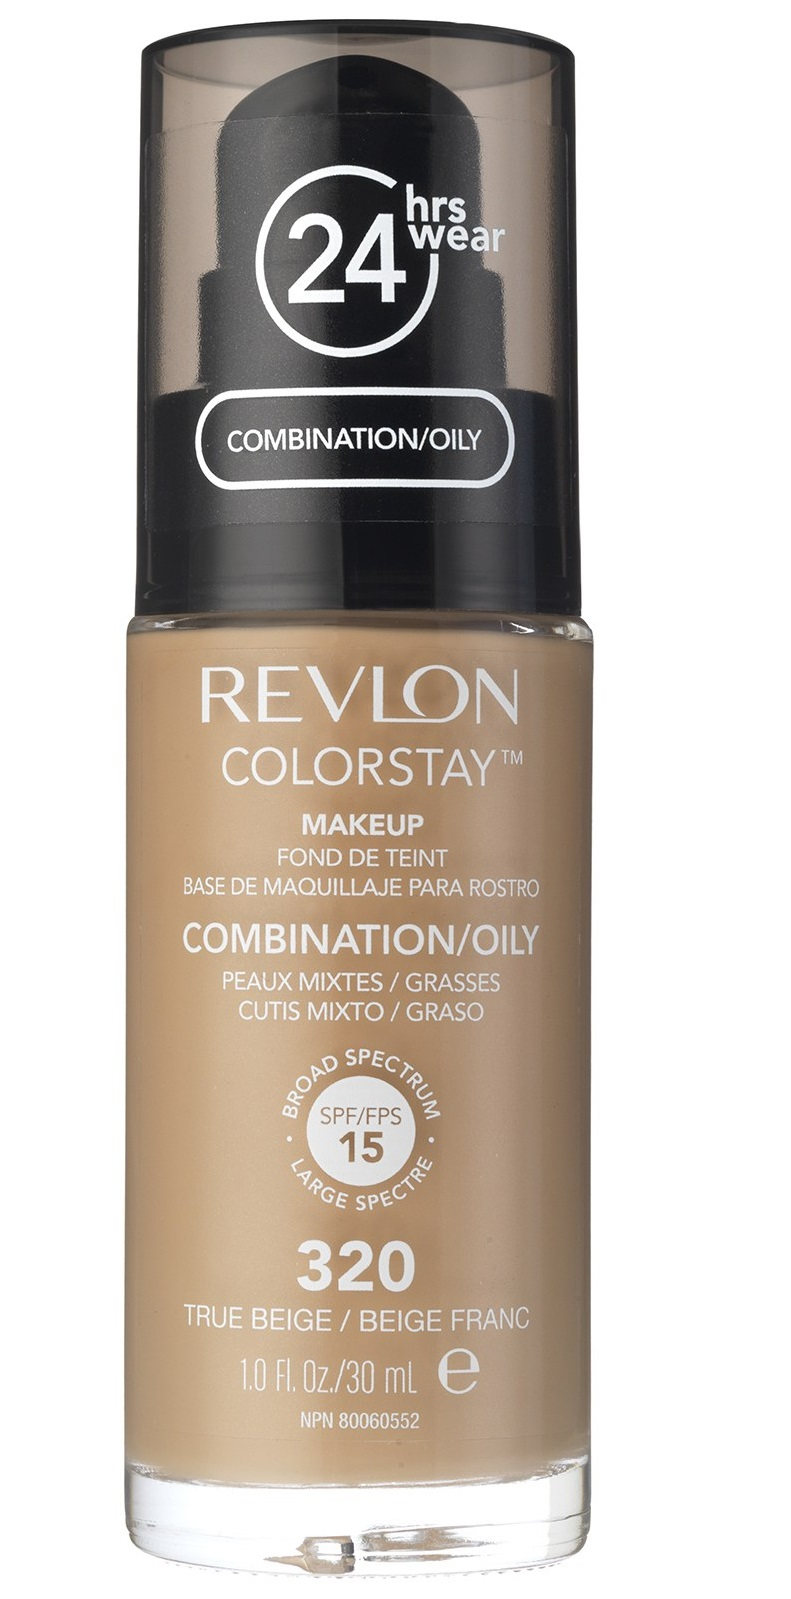 REVLON COLORSTAY OILY TRUE BEIG 320 FACE MAKEUP BASE